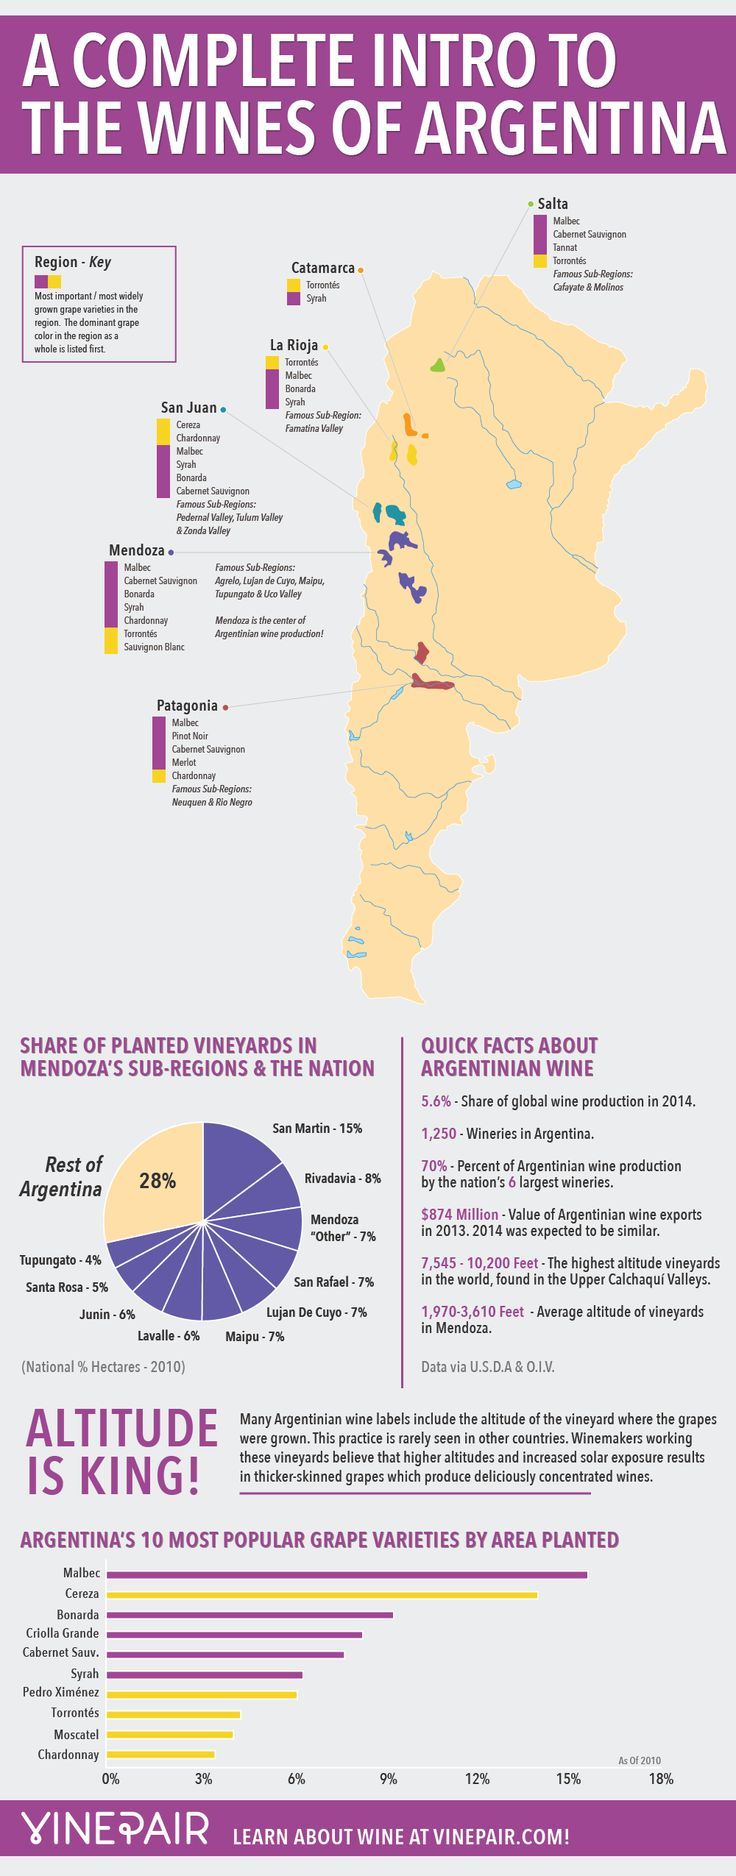 INFOGRAPHIC: The complete introduction to the wines of Argentina featuring a map! #wine #argentina #wineeducation